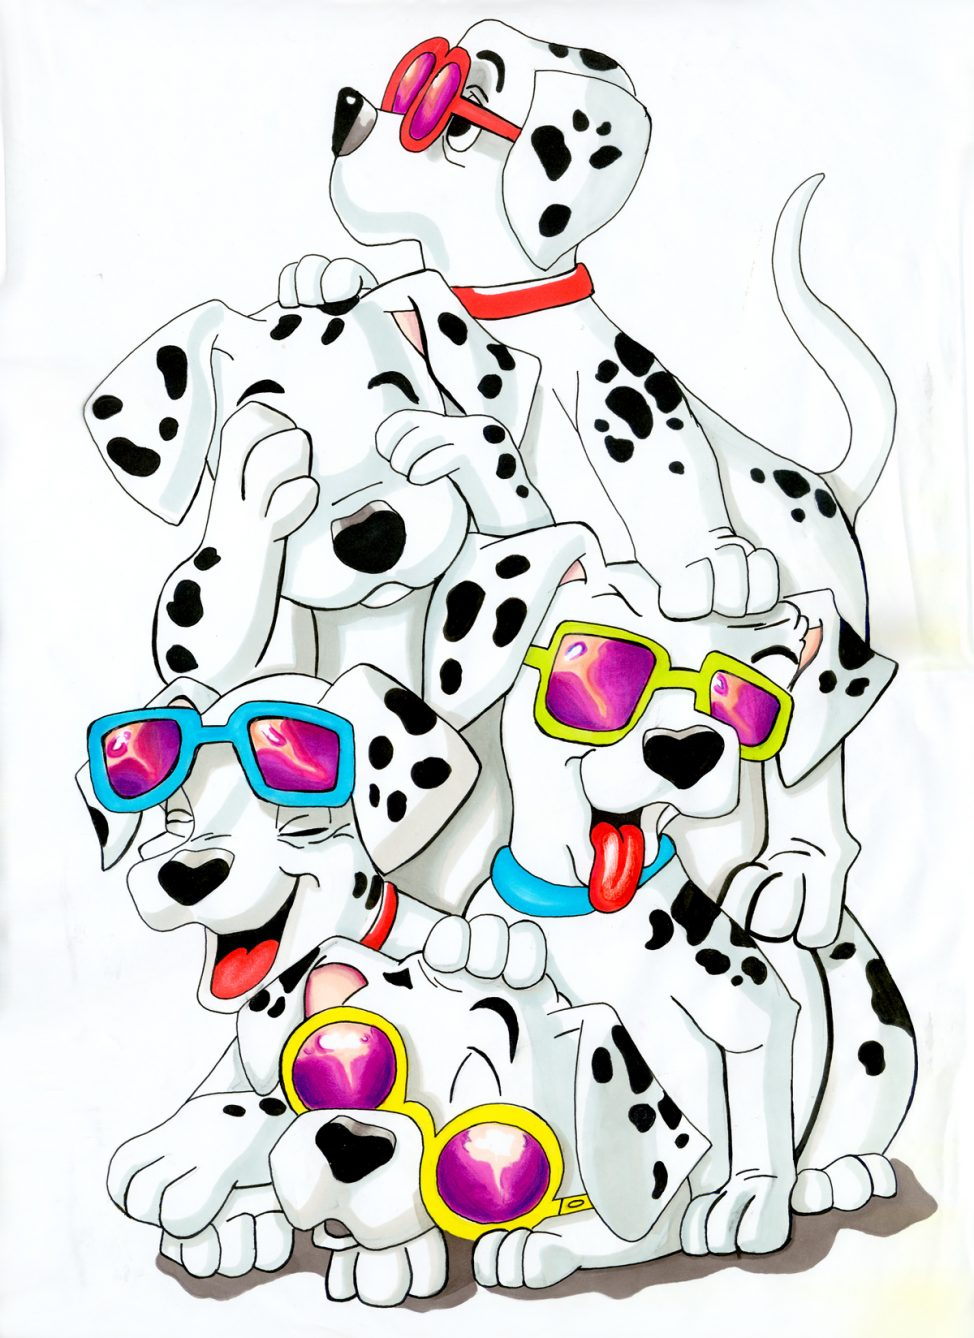 101 Dalmatians Coloring Pages | Free download best 101 Dalmatians ...